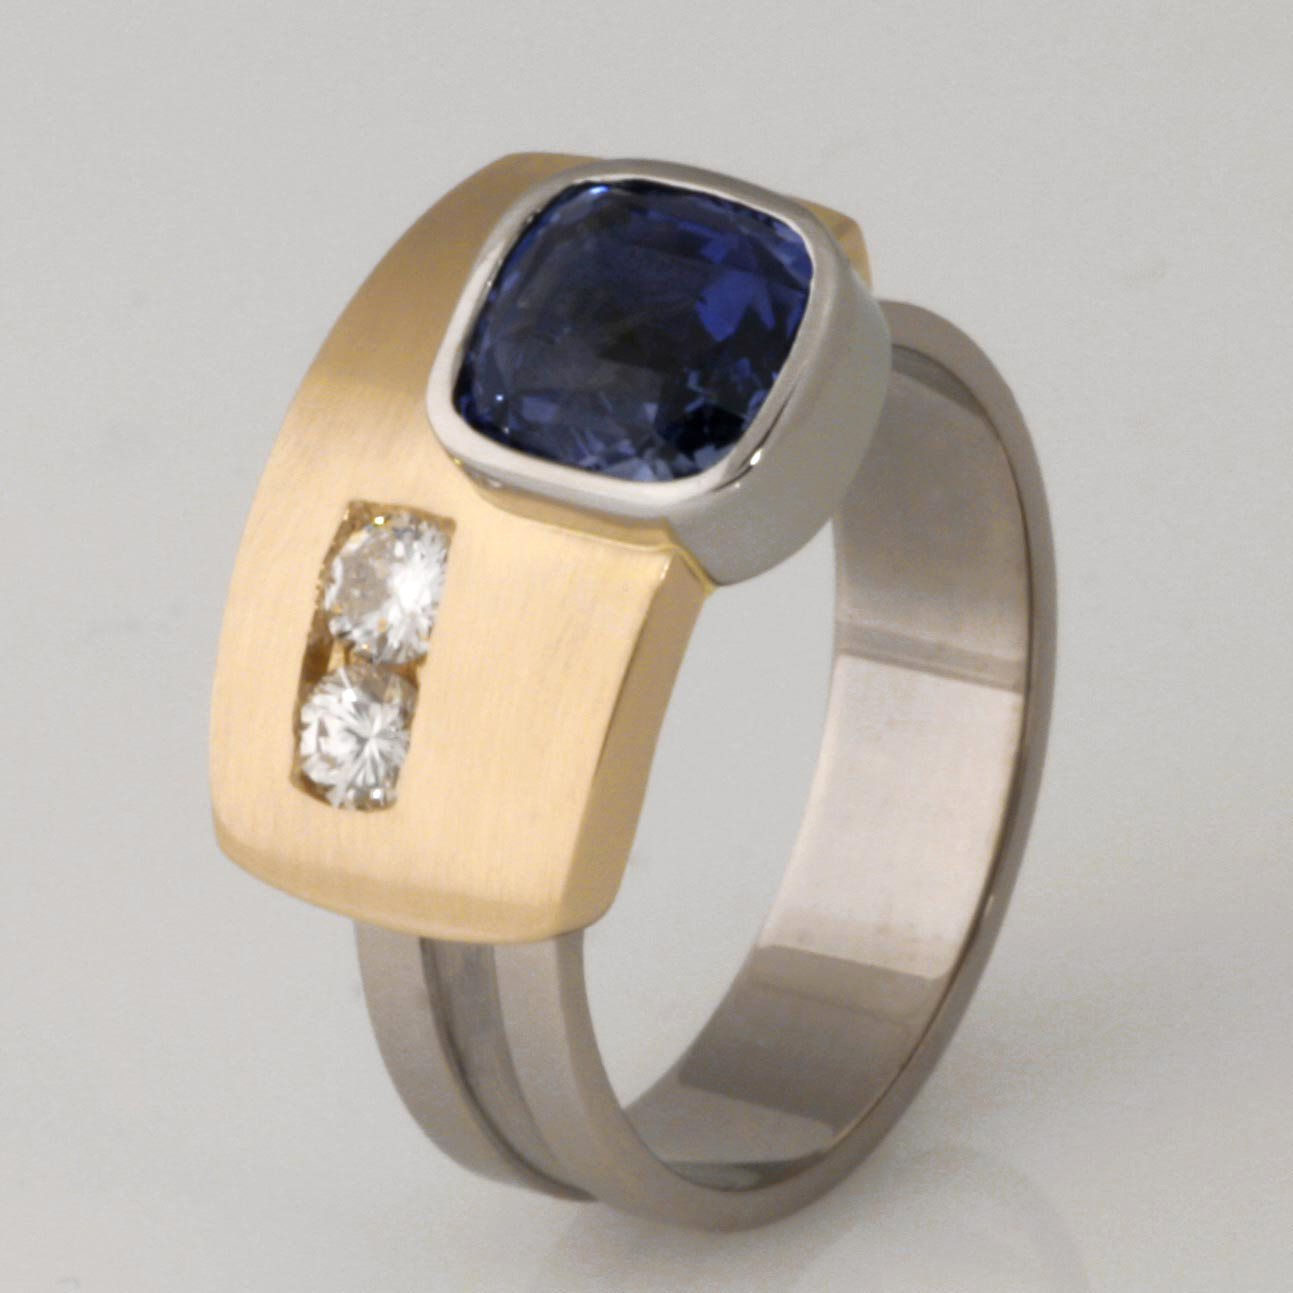 Handmade ladies 18ct yellow and white gold Sapphire and diamond Archie style ring